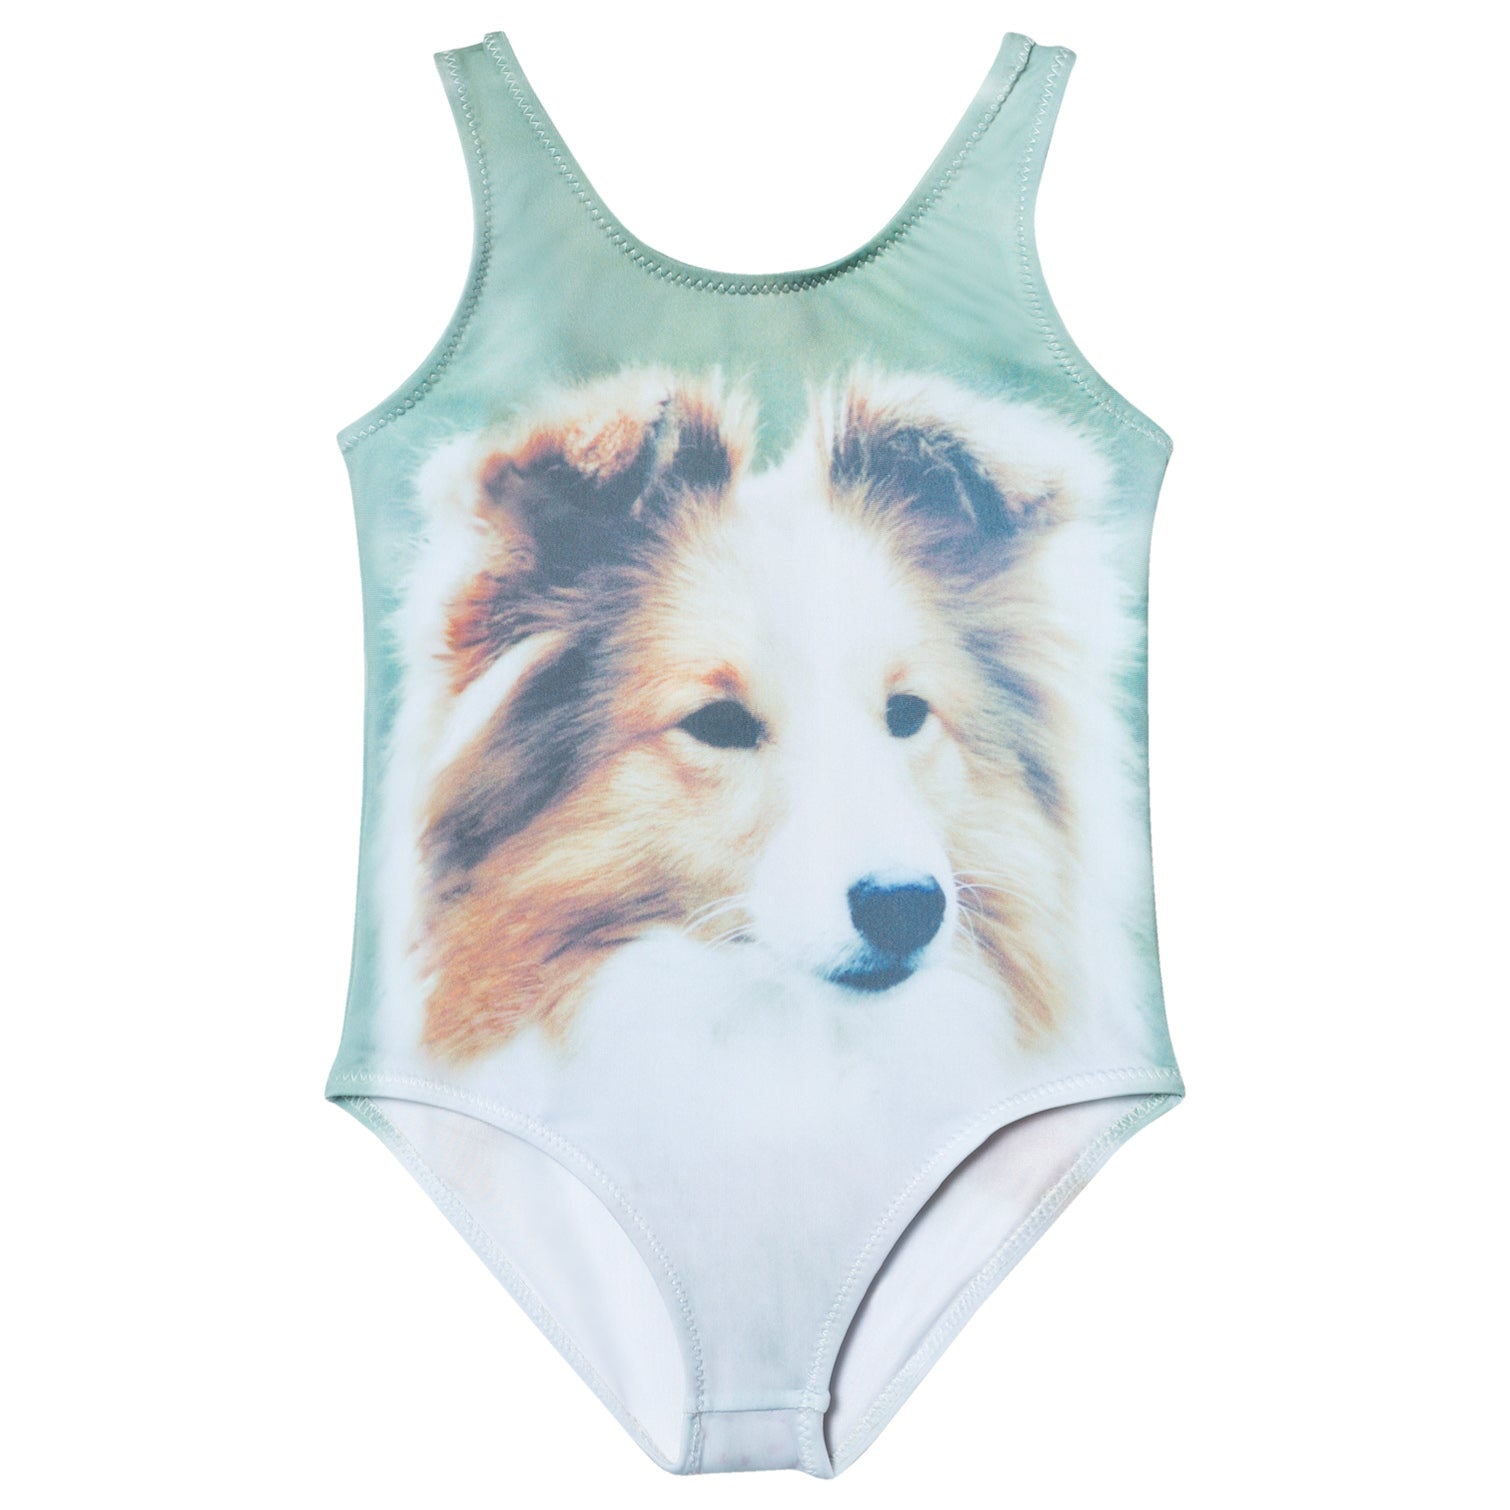 Popupshop Swimsuit Dog Print